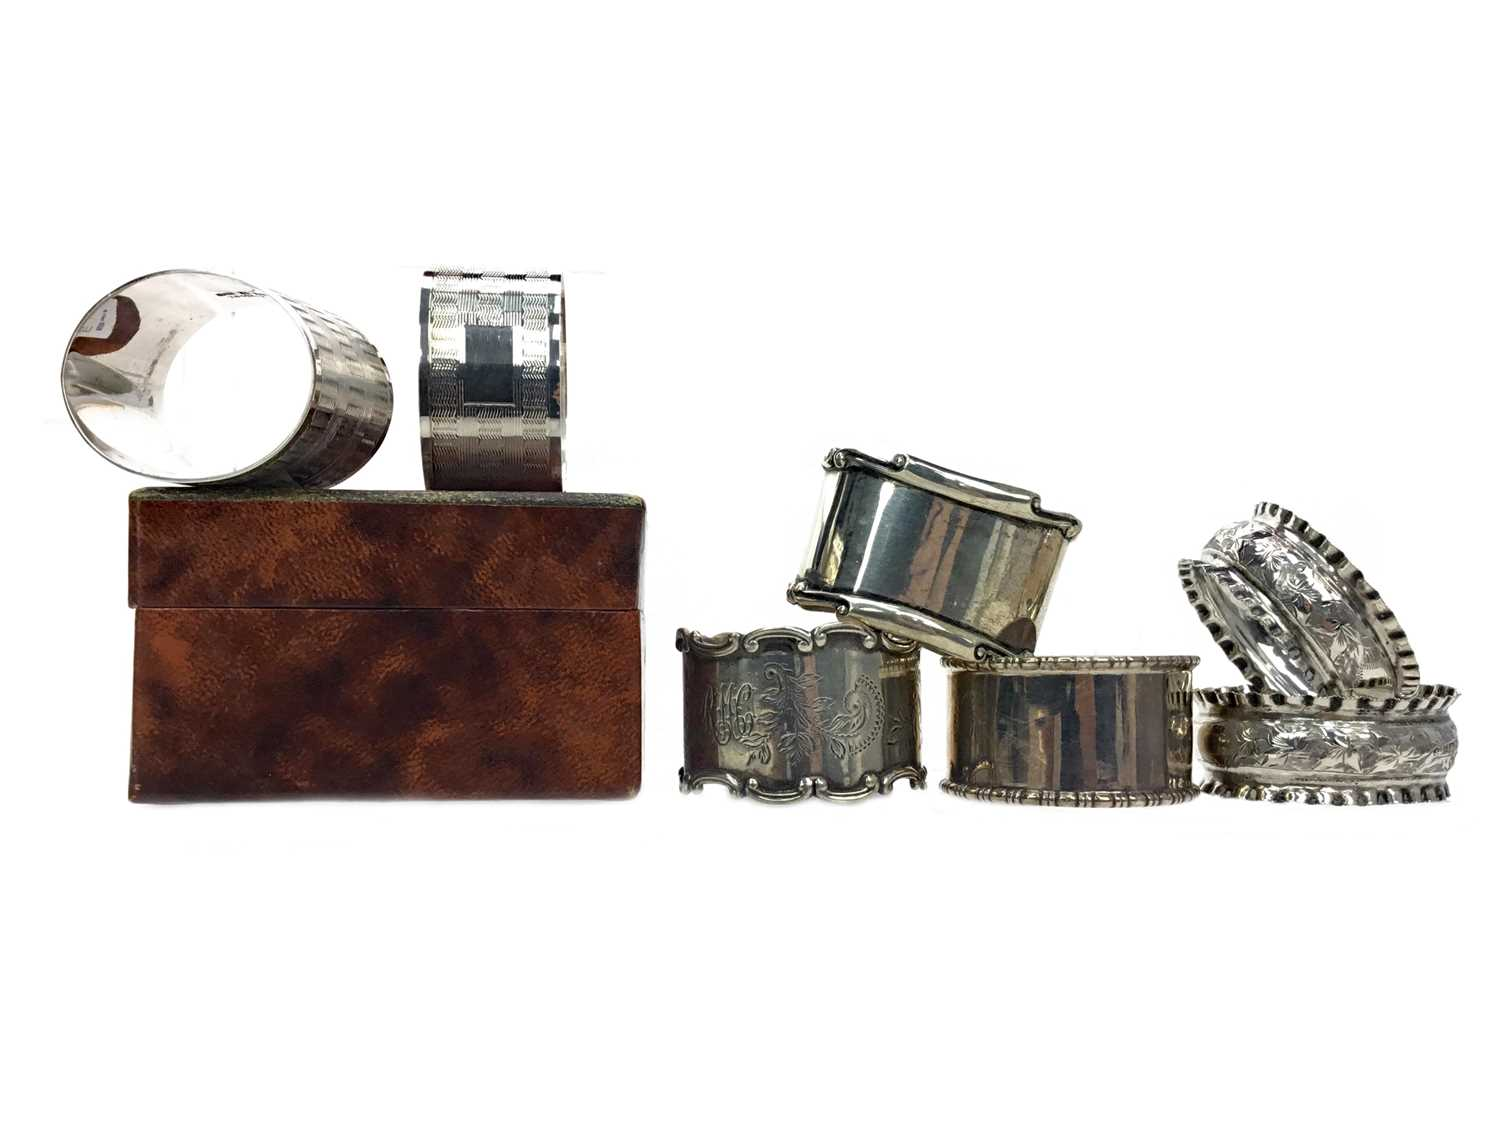 Lot 447 - A BOXED PAIR OF SILVER NAPKIN RINGS AND OTHER SILVER NAPKIN RINGS